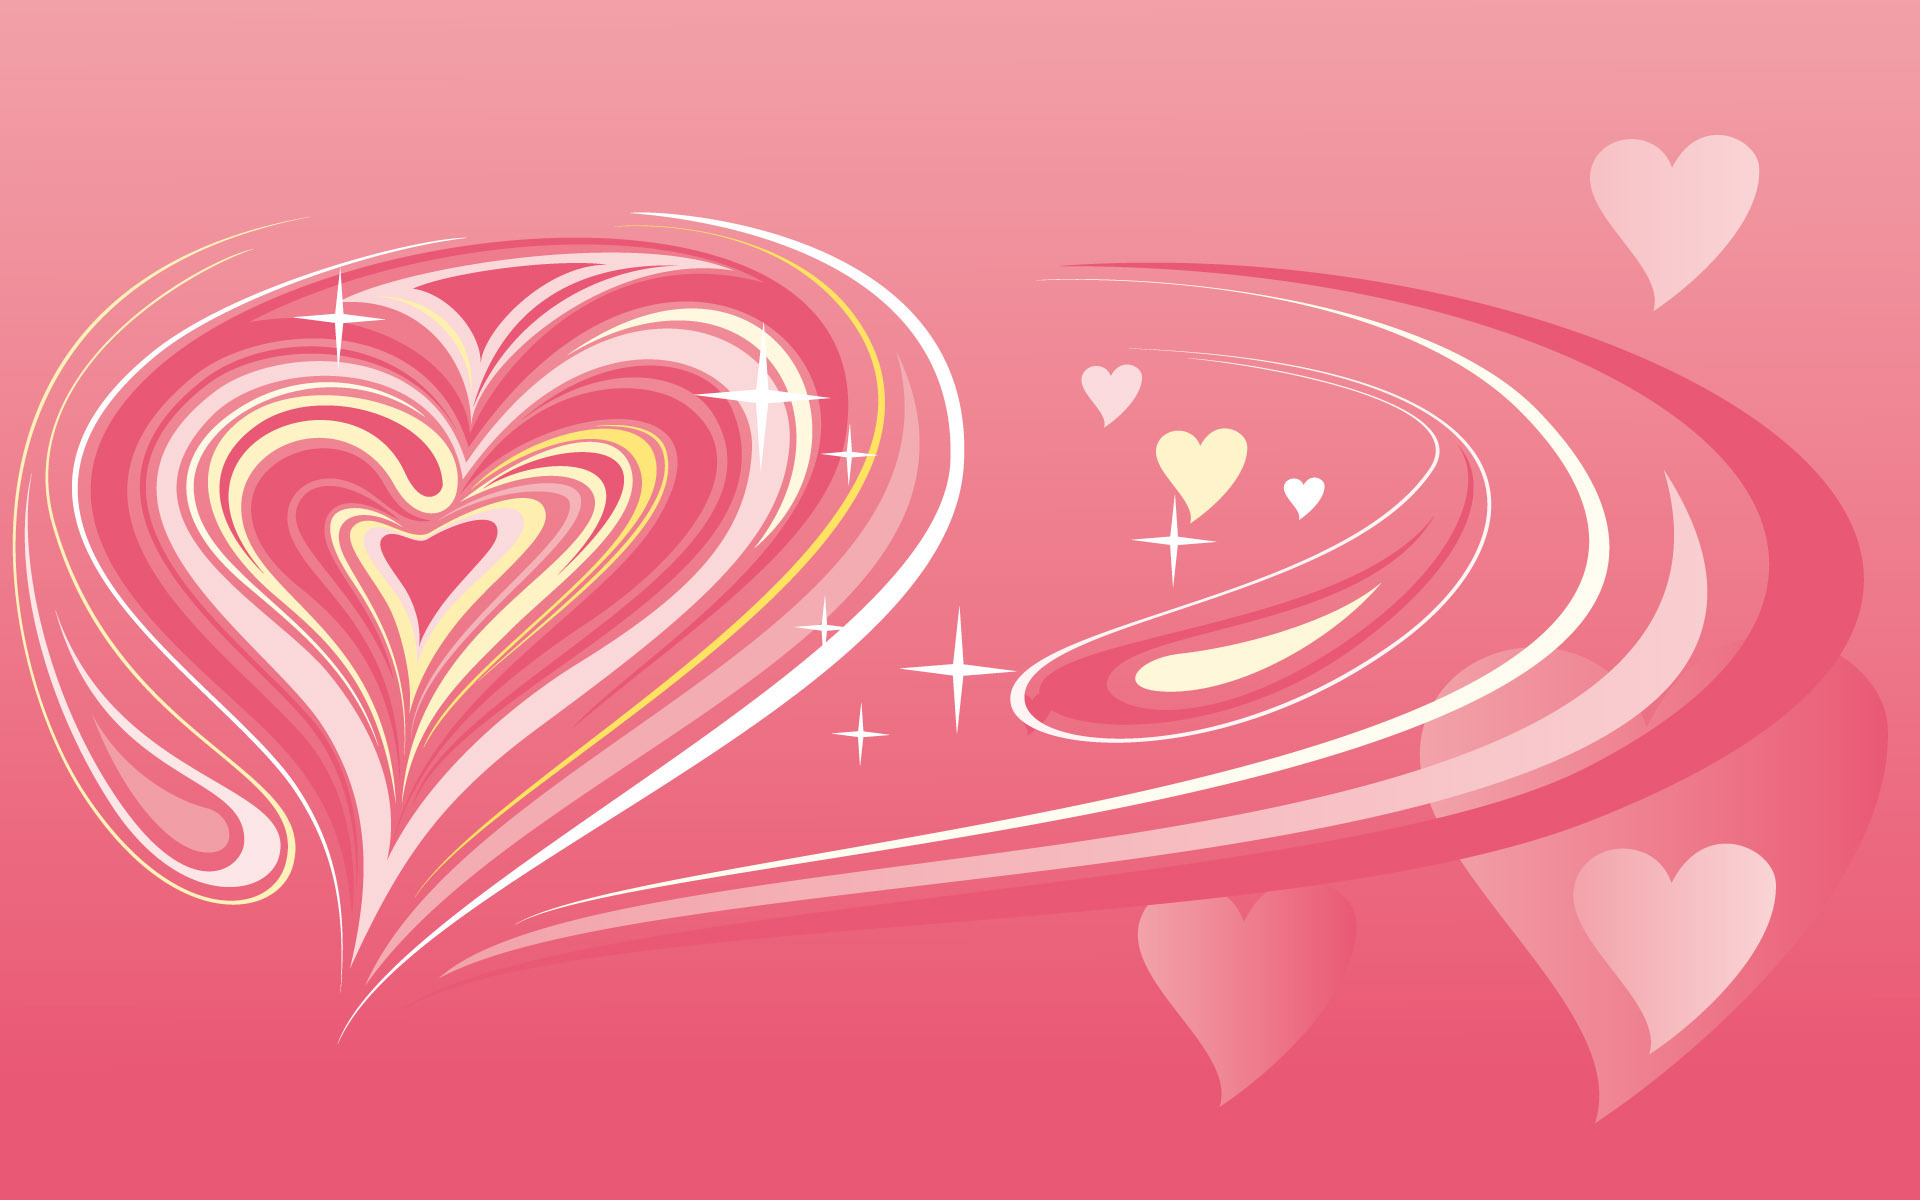 Love Wallpaper In Name : Love Wallpaper - Love Wallpaper (4187726) - Fanpop